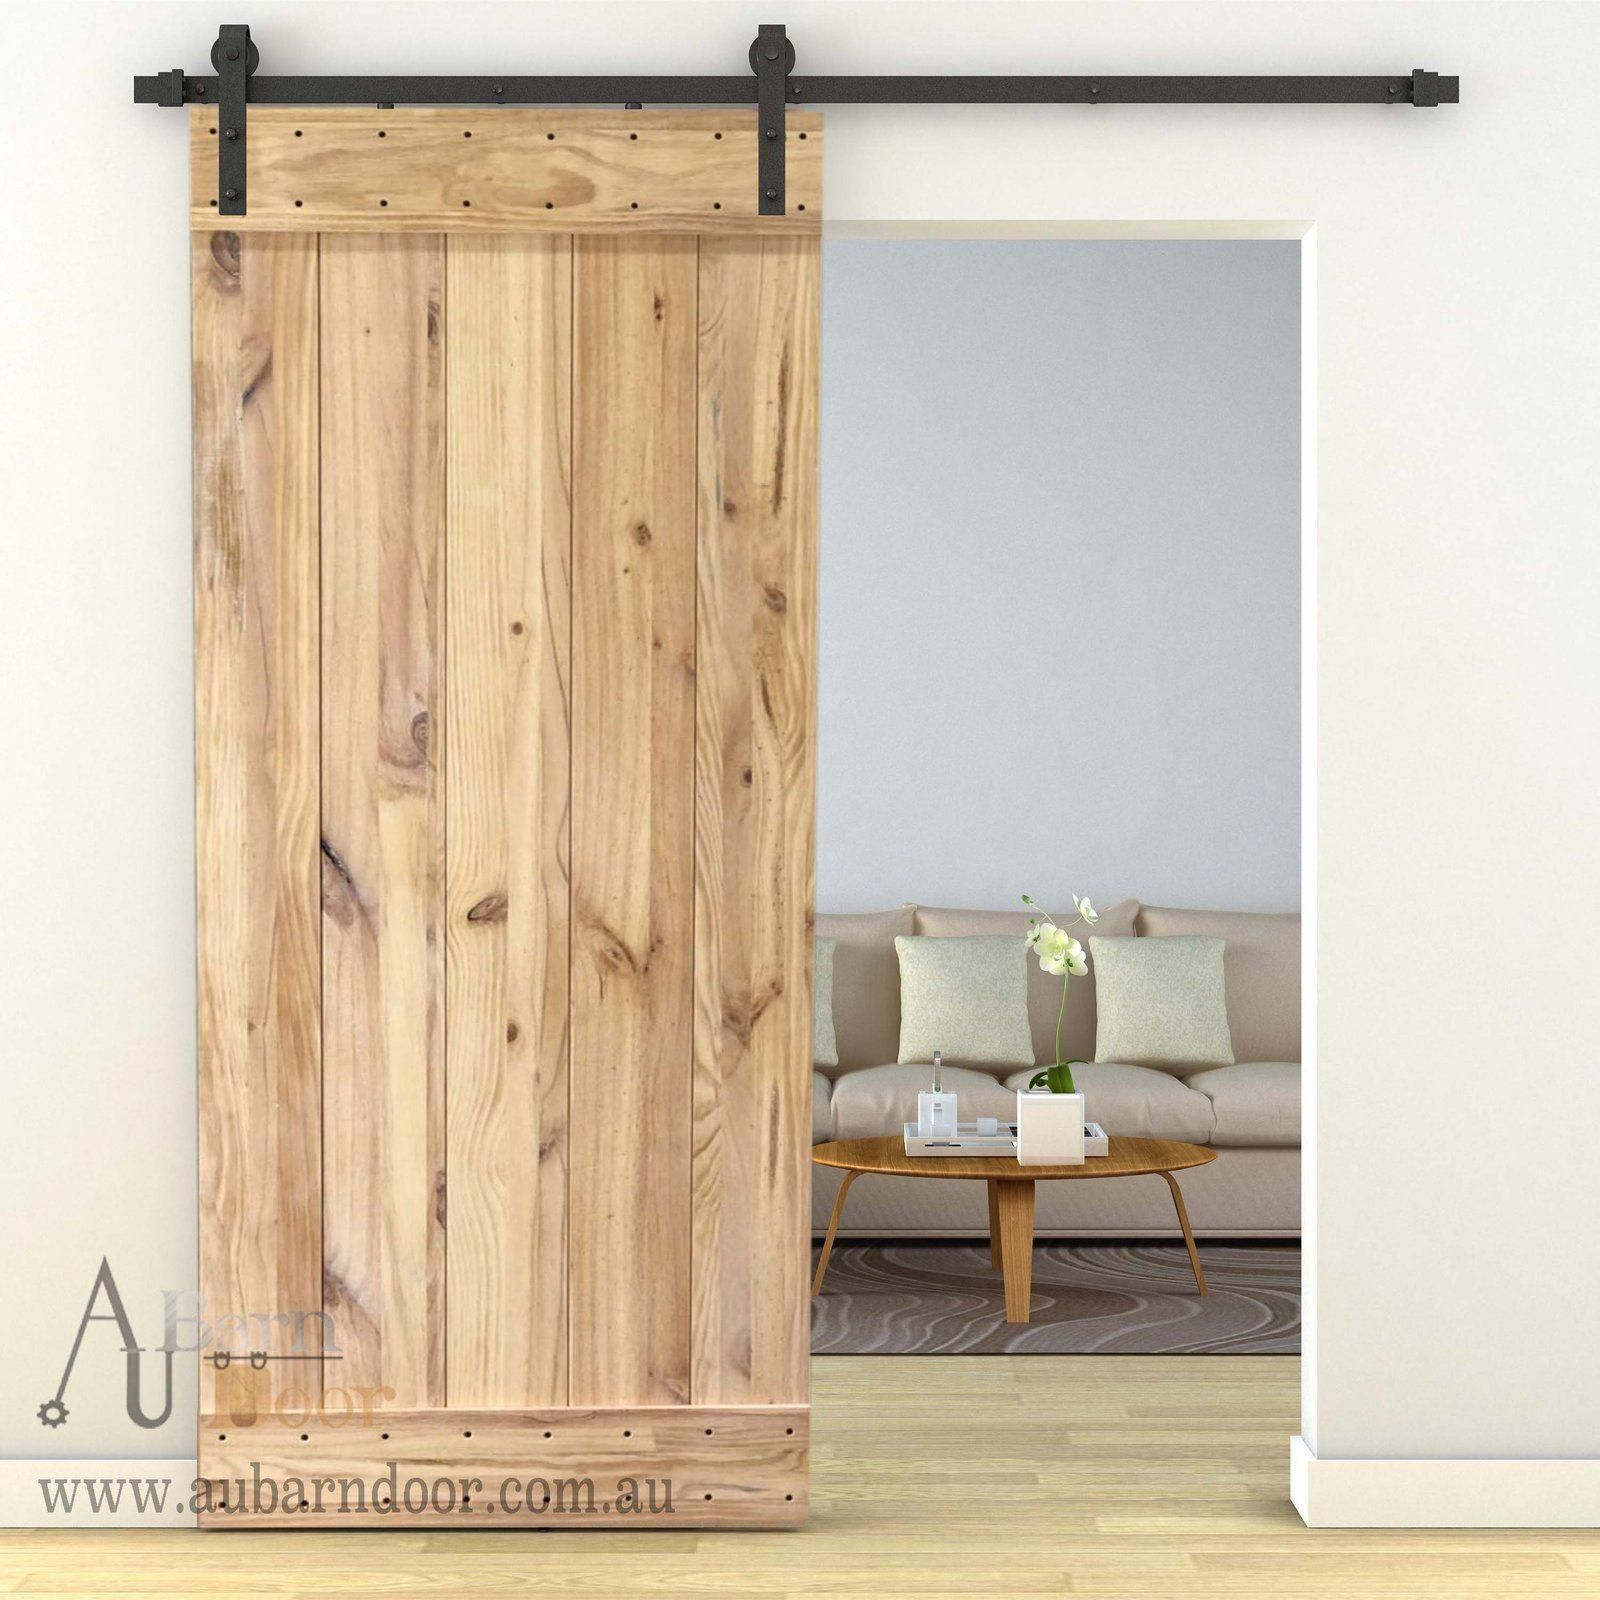 Door Track Inside Doors Short Sliding Closet Doors 20190103 Interior Barn Doors Double Sliding Barn Doors Barn Doors Sliding